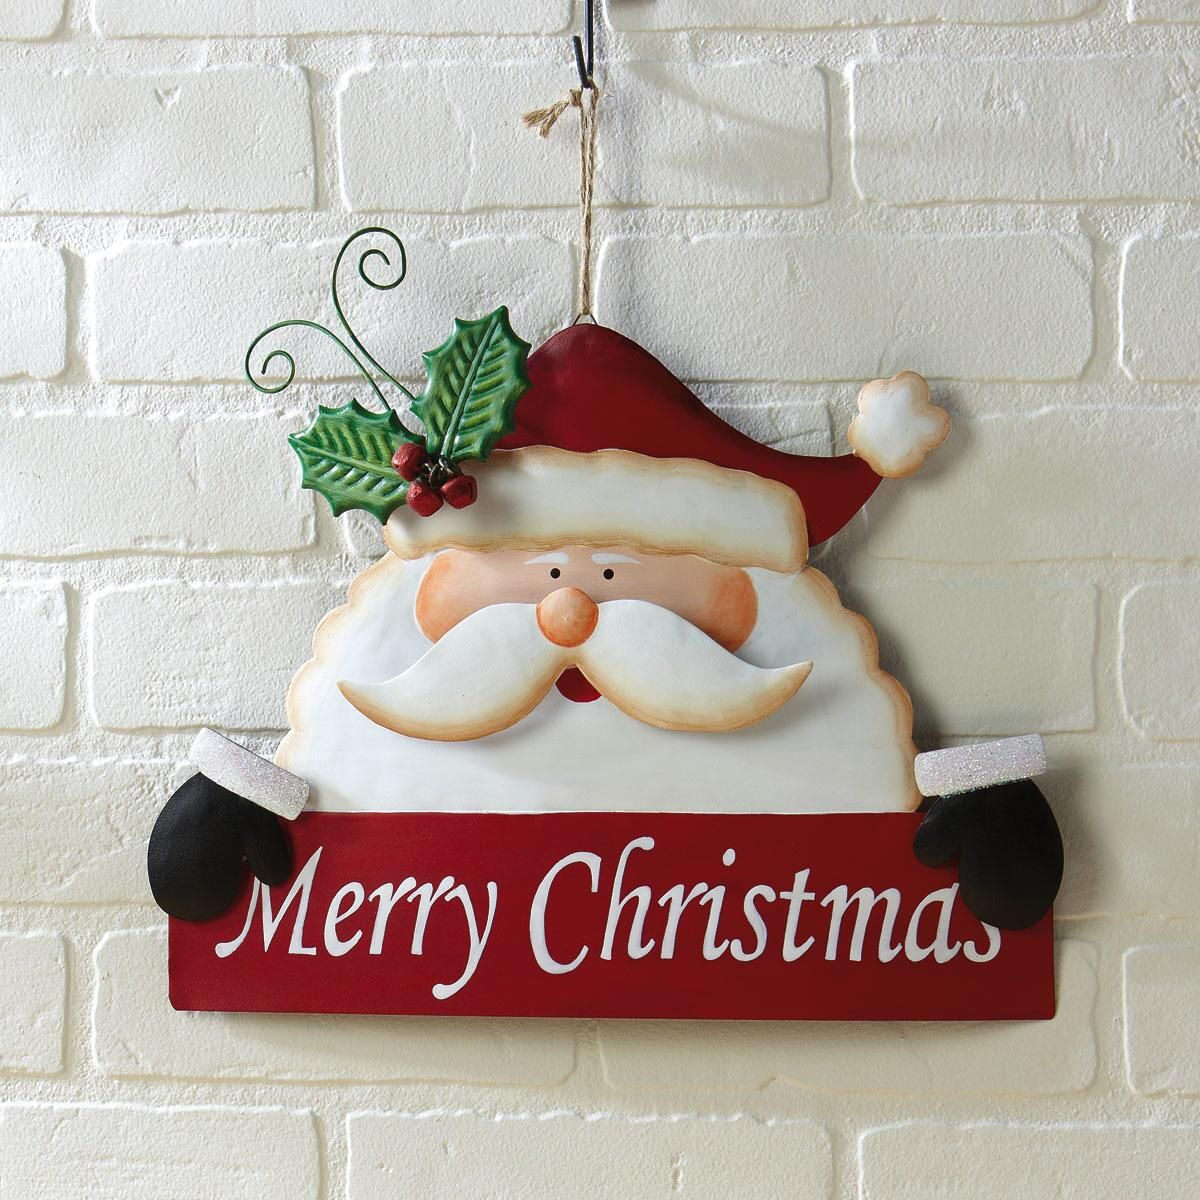 Merry Christmas Santa Festive Metal Sign